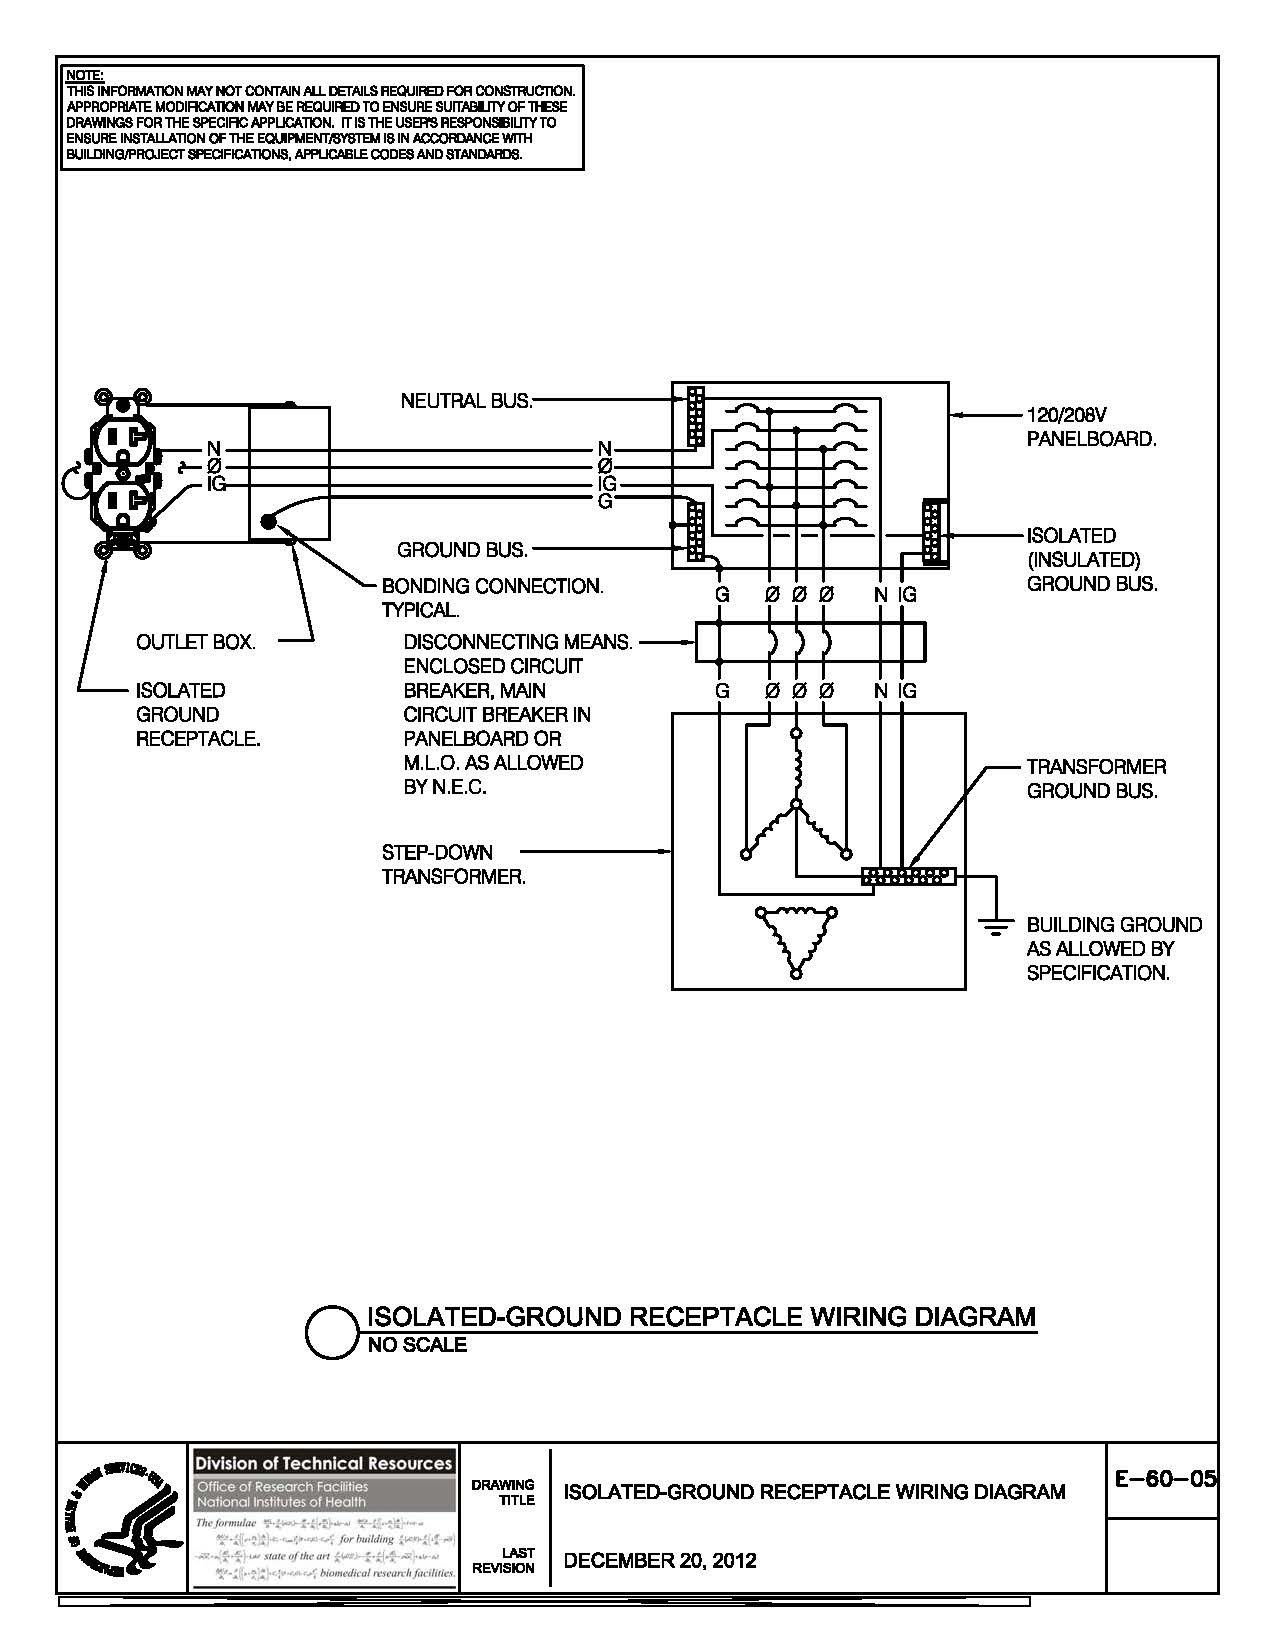 rs485 wiring diagram Download-Rs485 Wiring Diagram Unique Lightning Protection Product Details Ground Rod Detail Pdf For Modbus 16-l